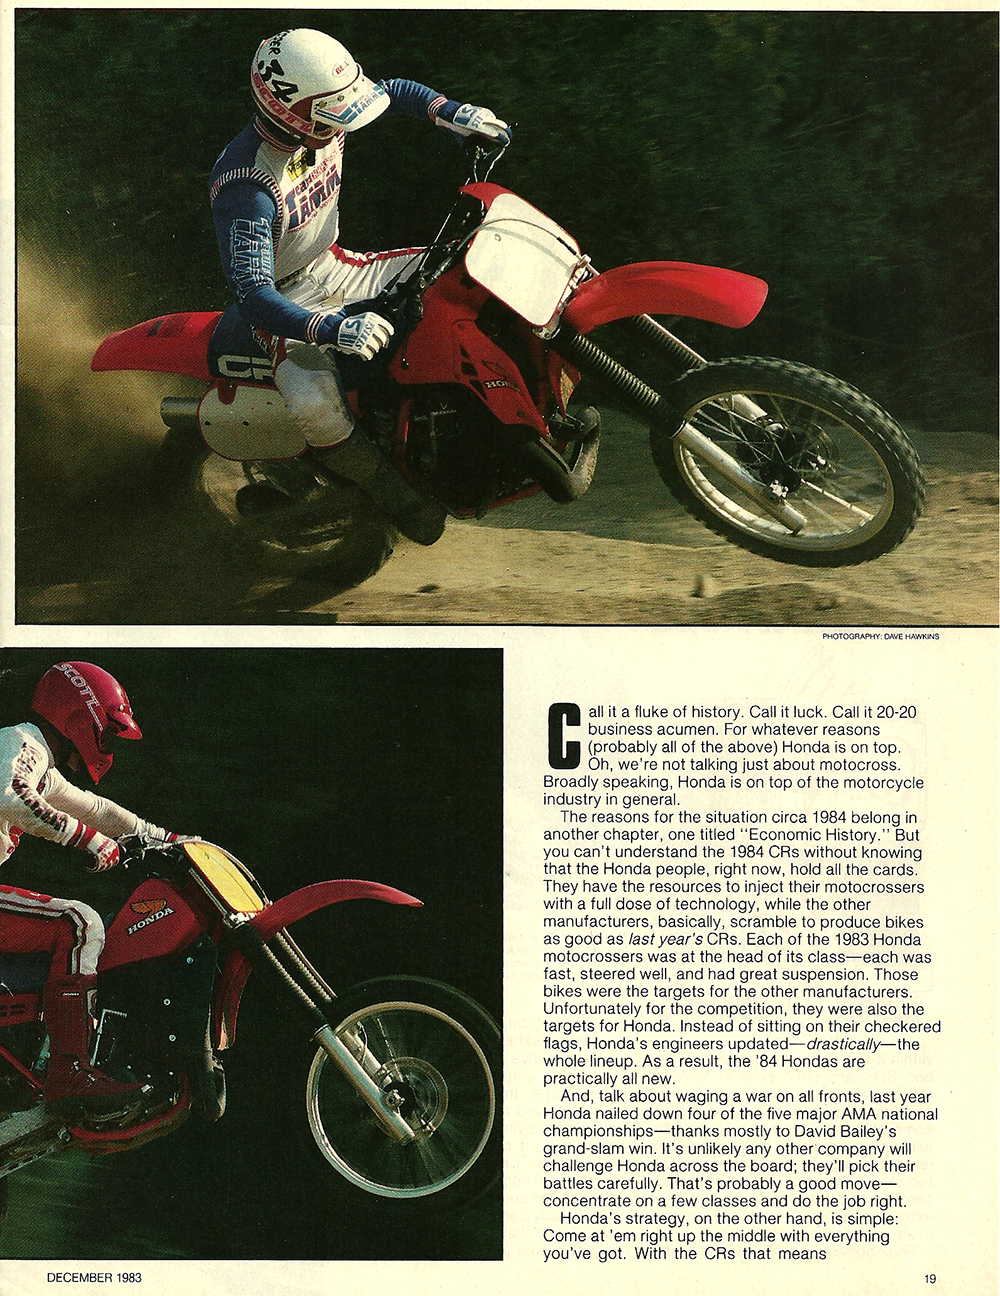 1984 Honda CR 125 250 500 road test 02.jpg